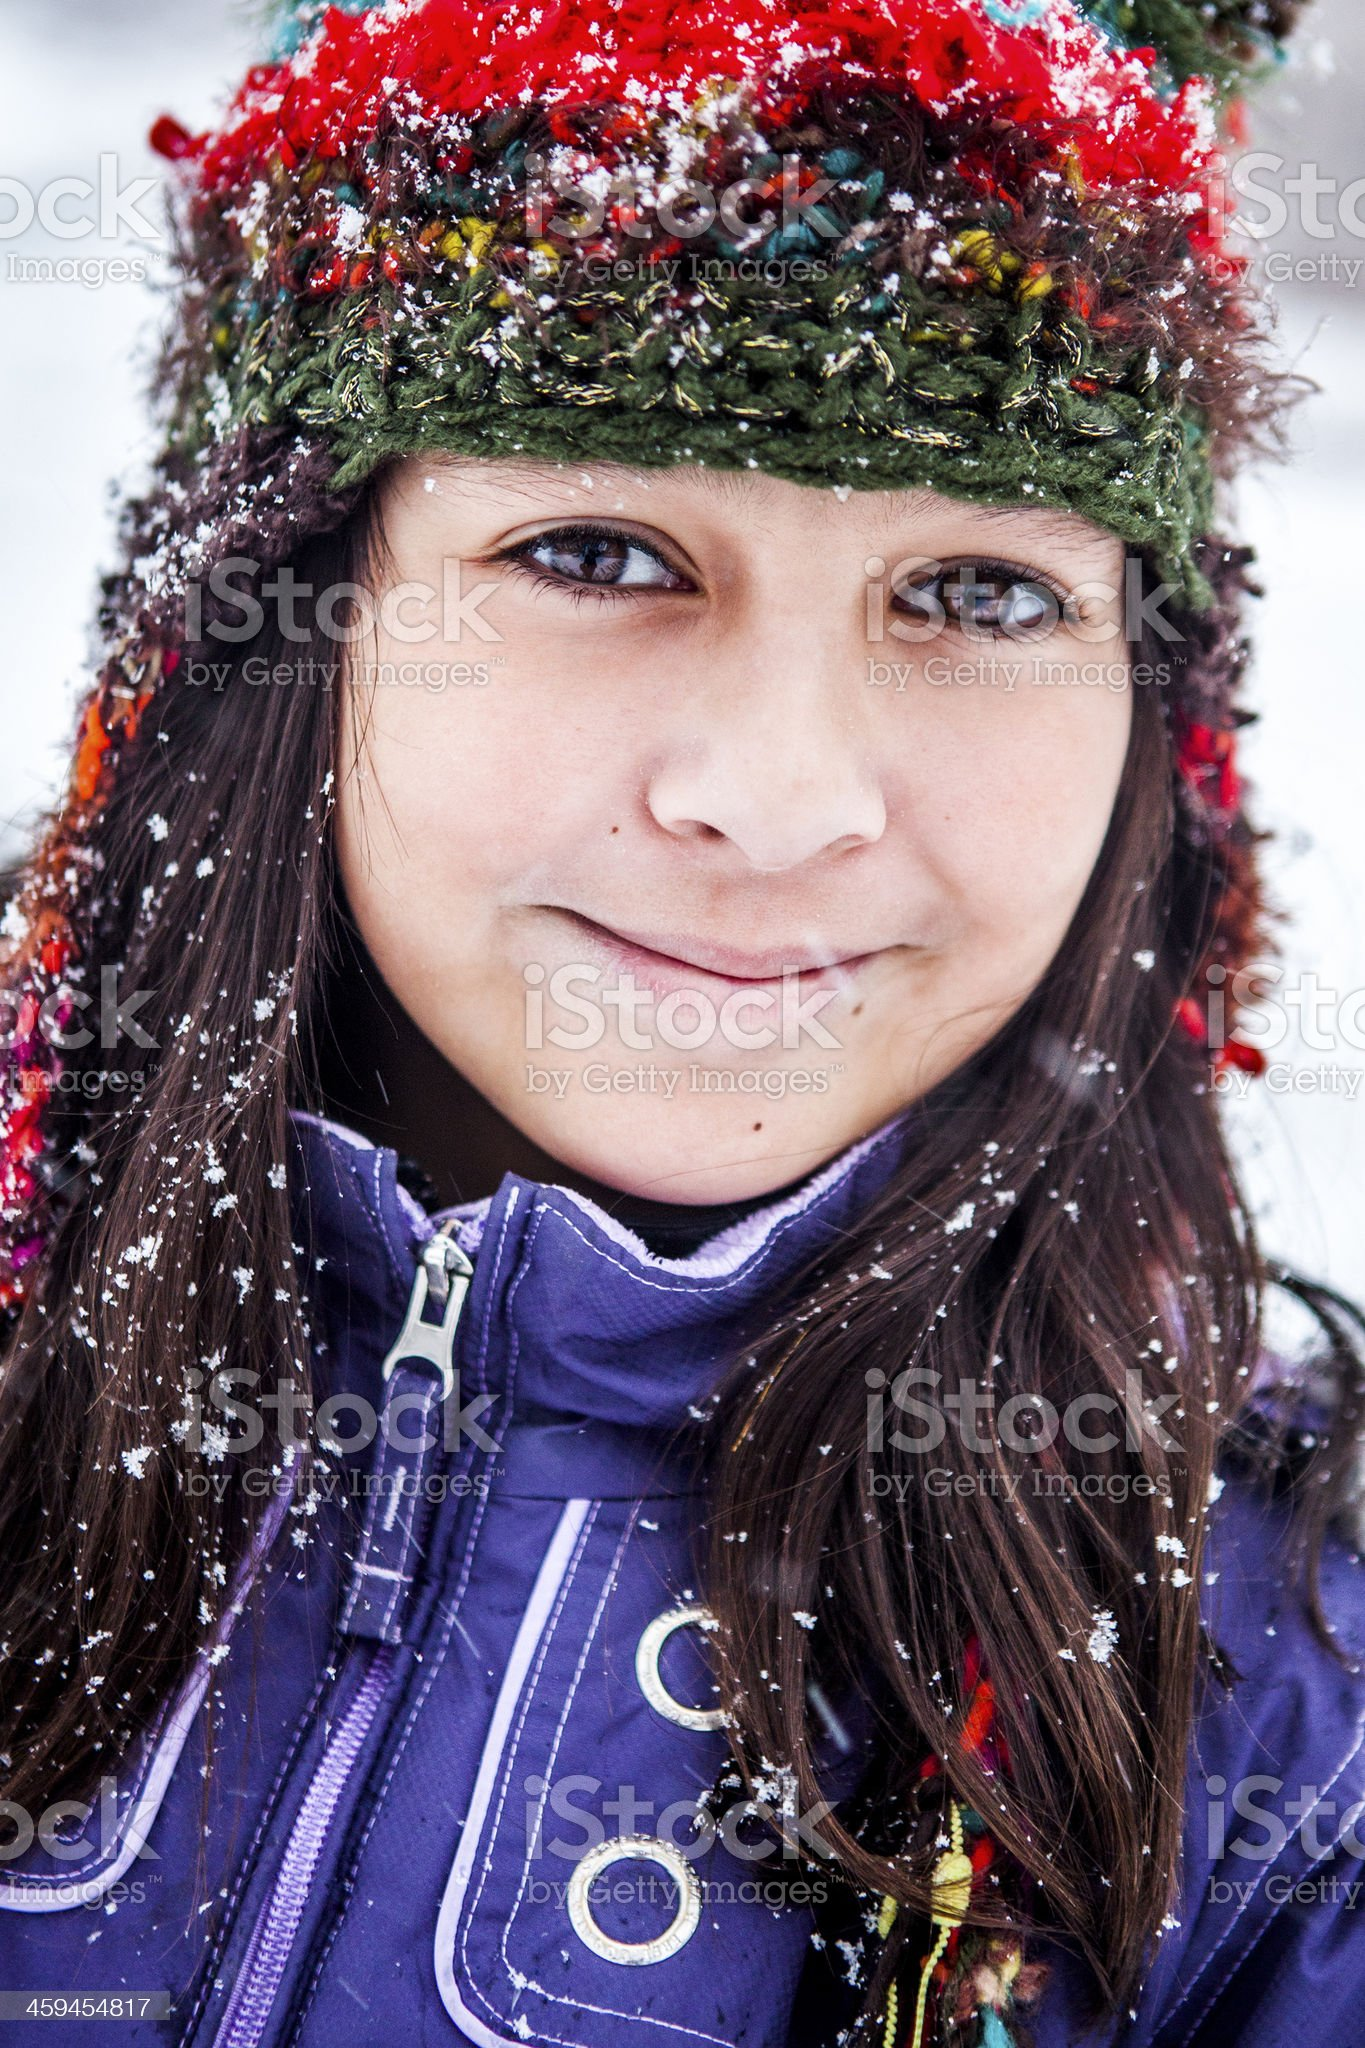 Cute Little Girl Outside in Winter Snow royalty-free stock photo